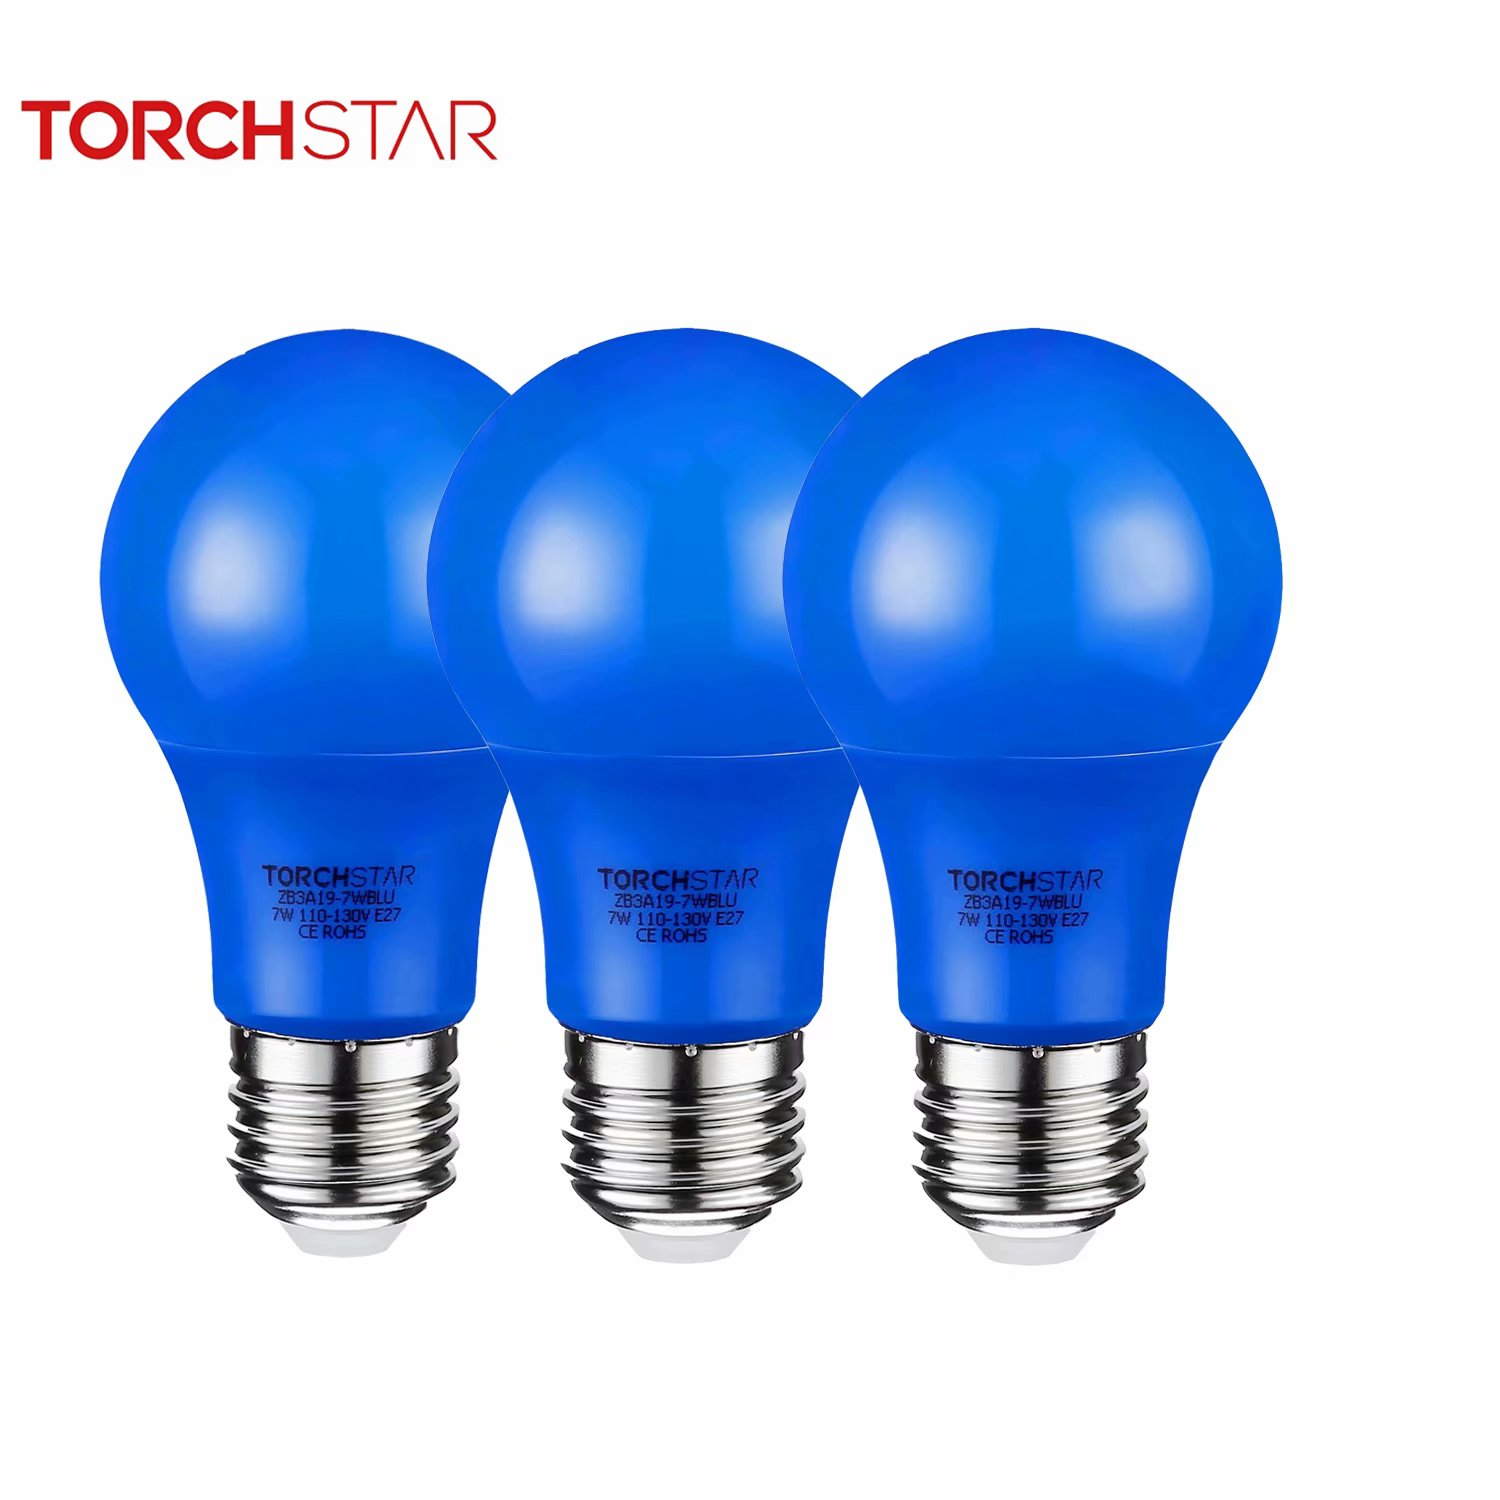 TORCHSTAR Blue LED A19 Colored Light Bulb, 7W, Medium E27 Base, Pack of 3